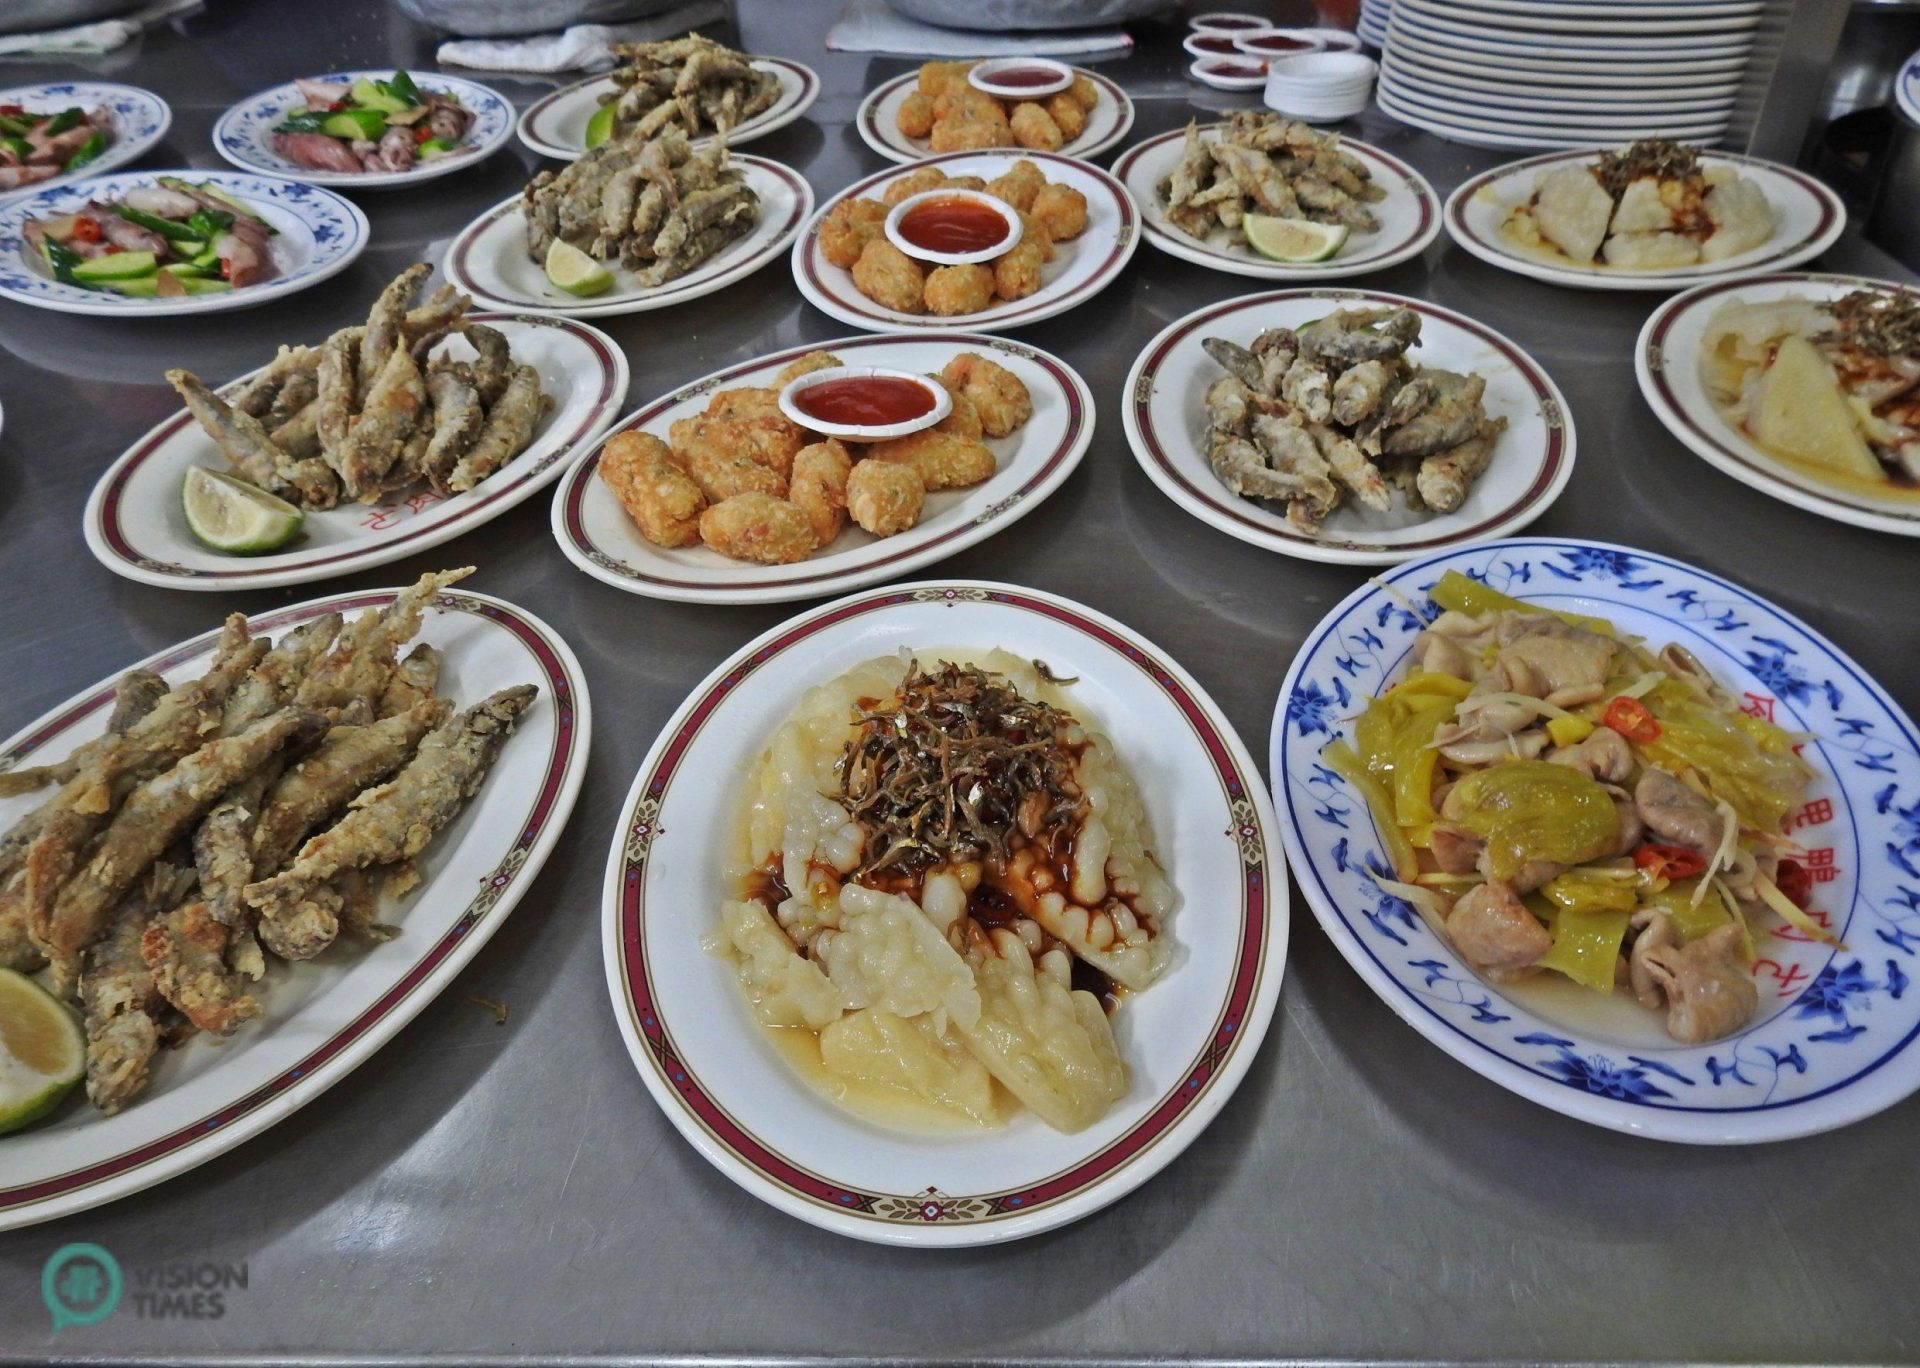 Jinshan Old Street is famous for traditional Taiwanese food and stuff that is missing most street markets in Taiwan. (Image: Billy Shyu / Vision Times)